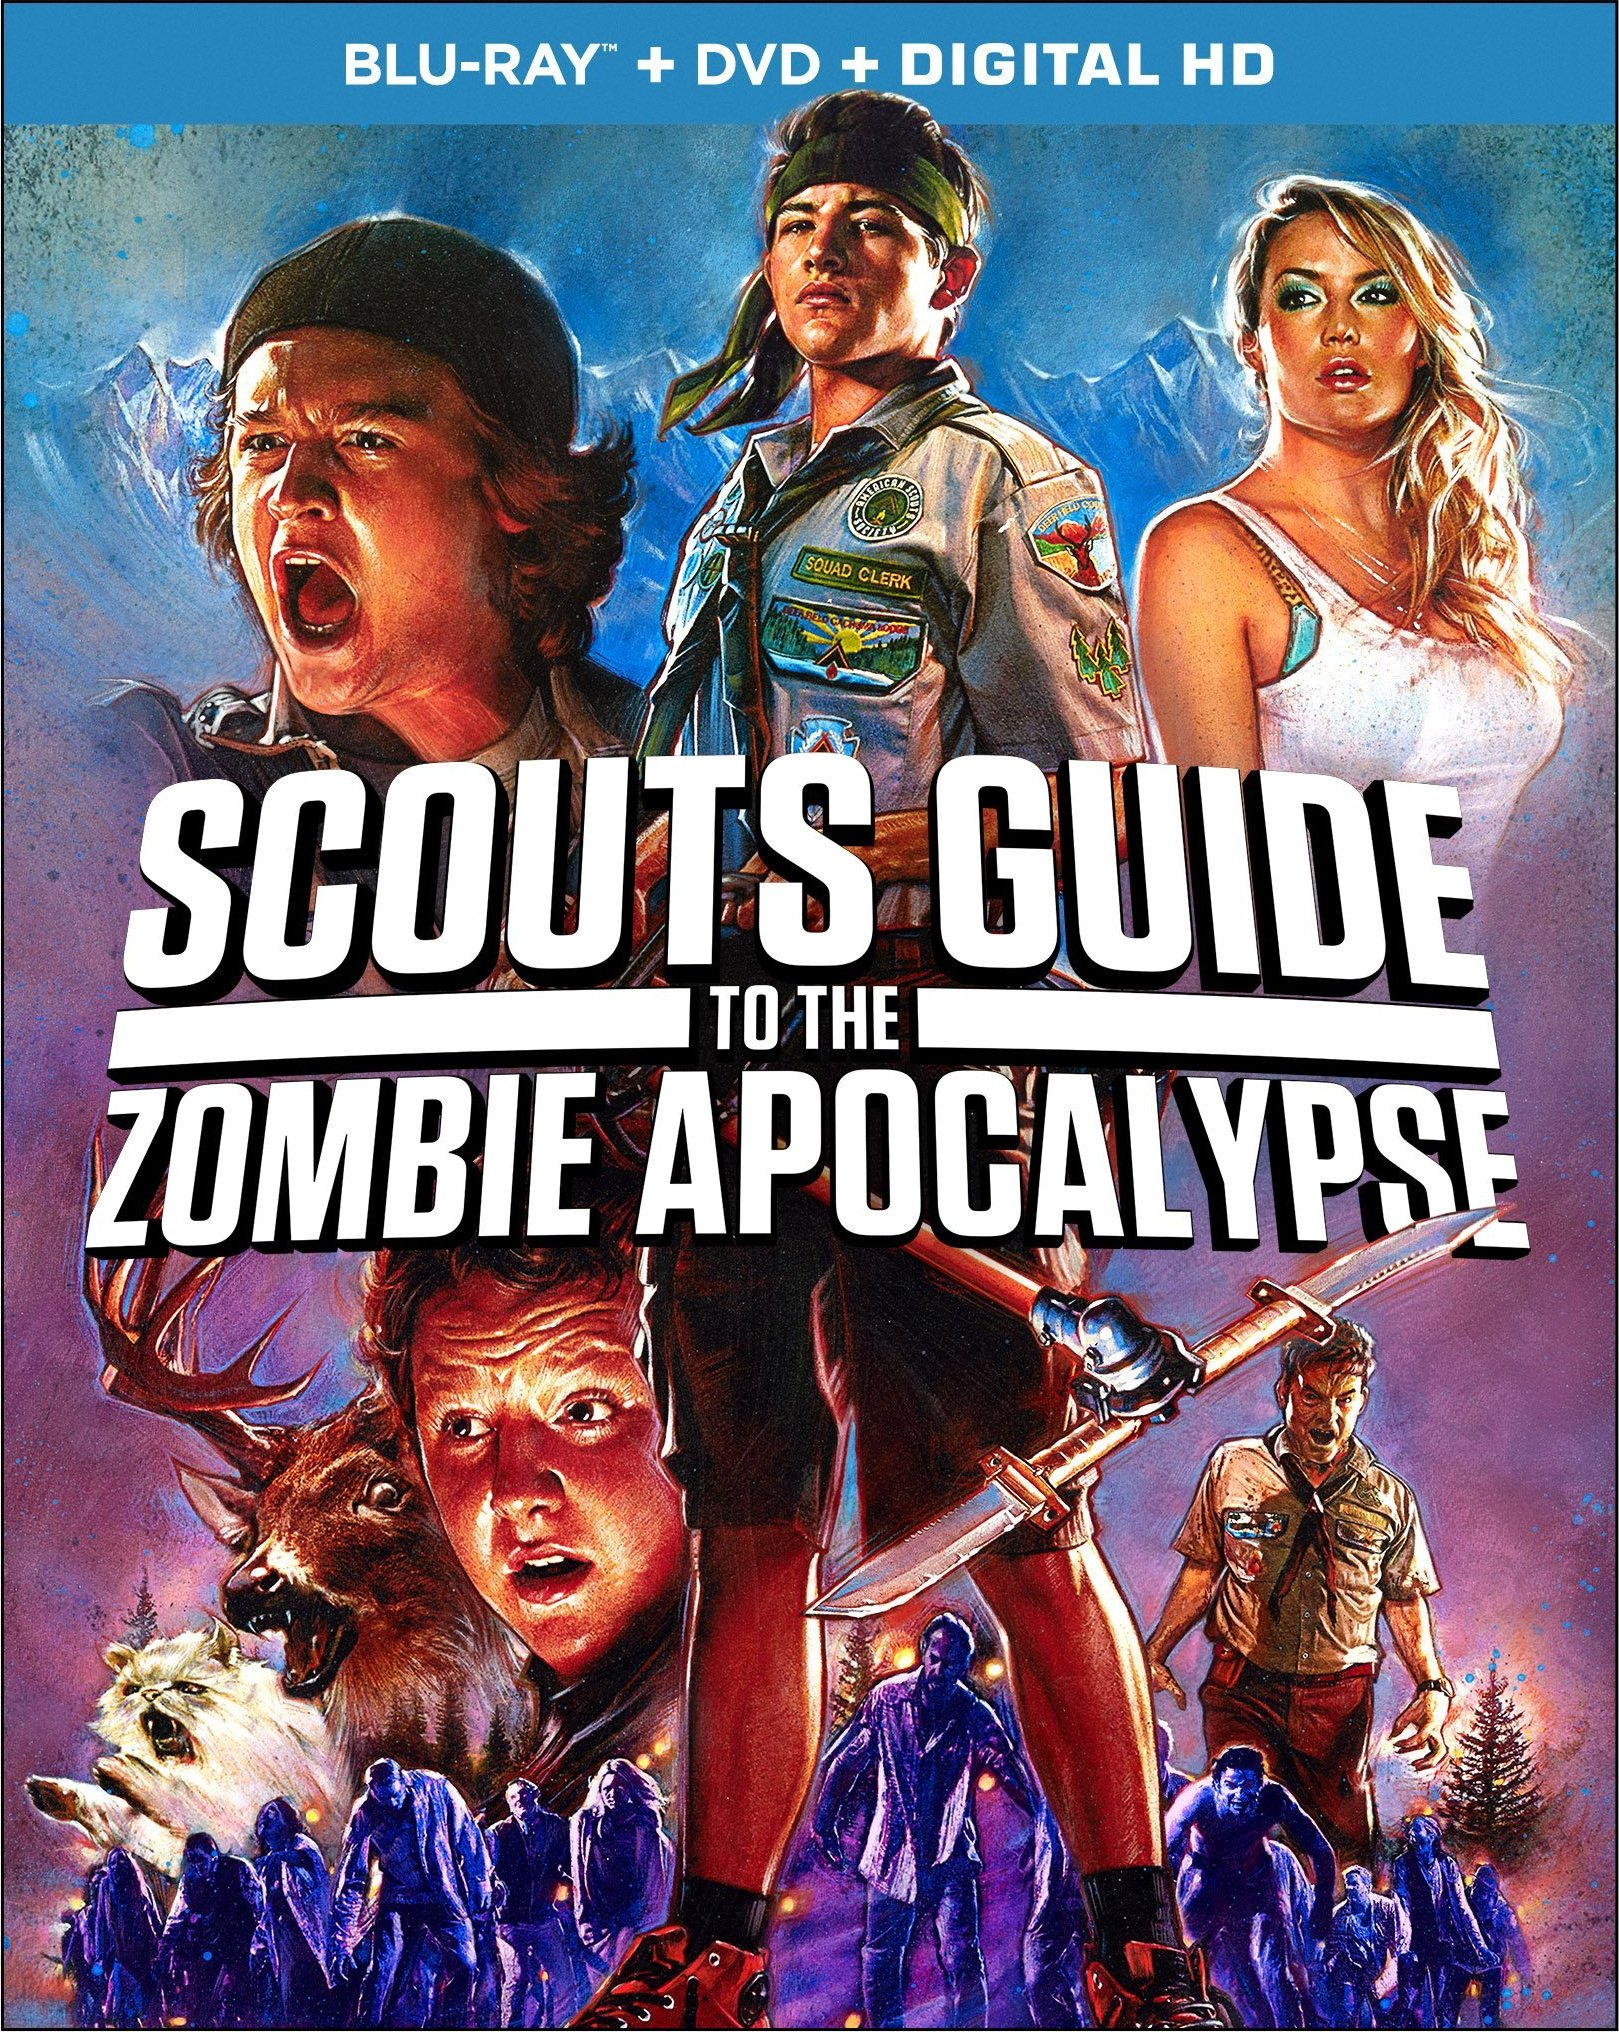 Scouts Guide to the Zombie Apocalypse (2015) Blu-ray